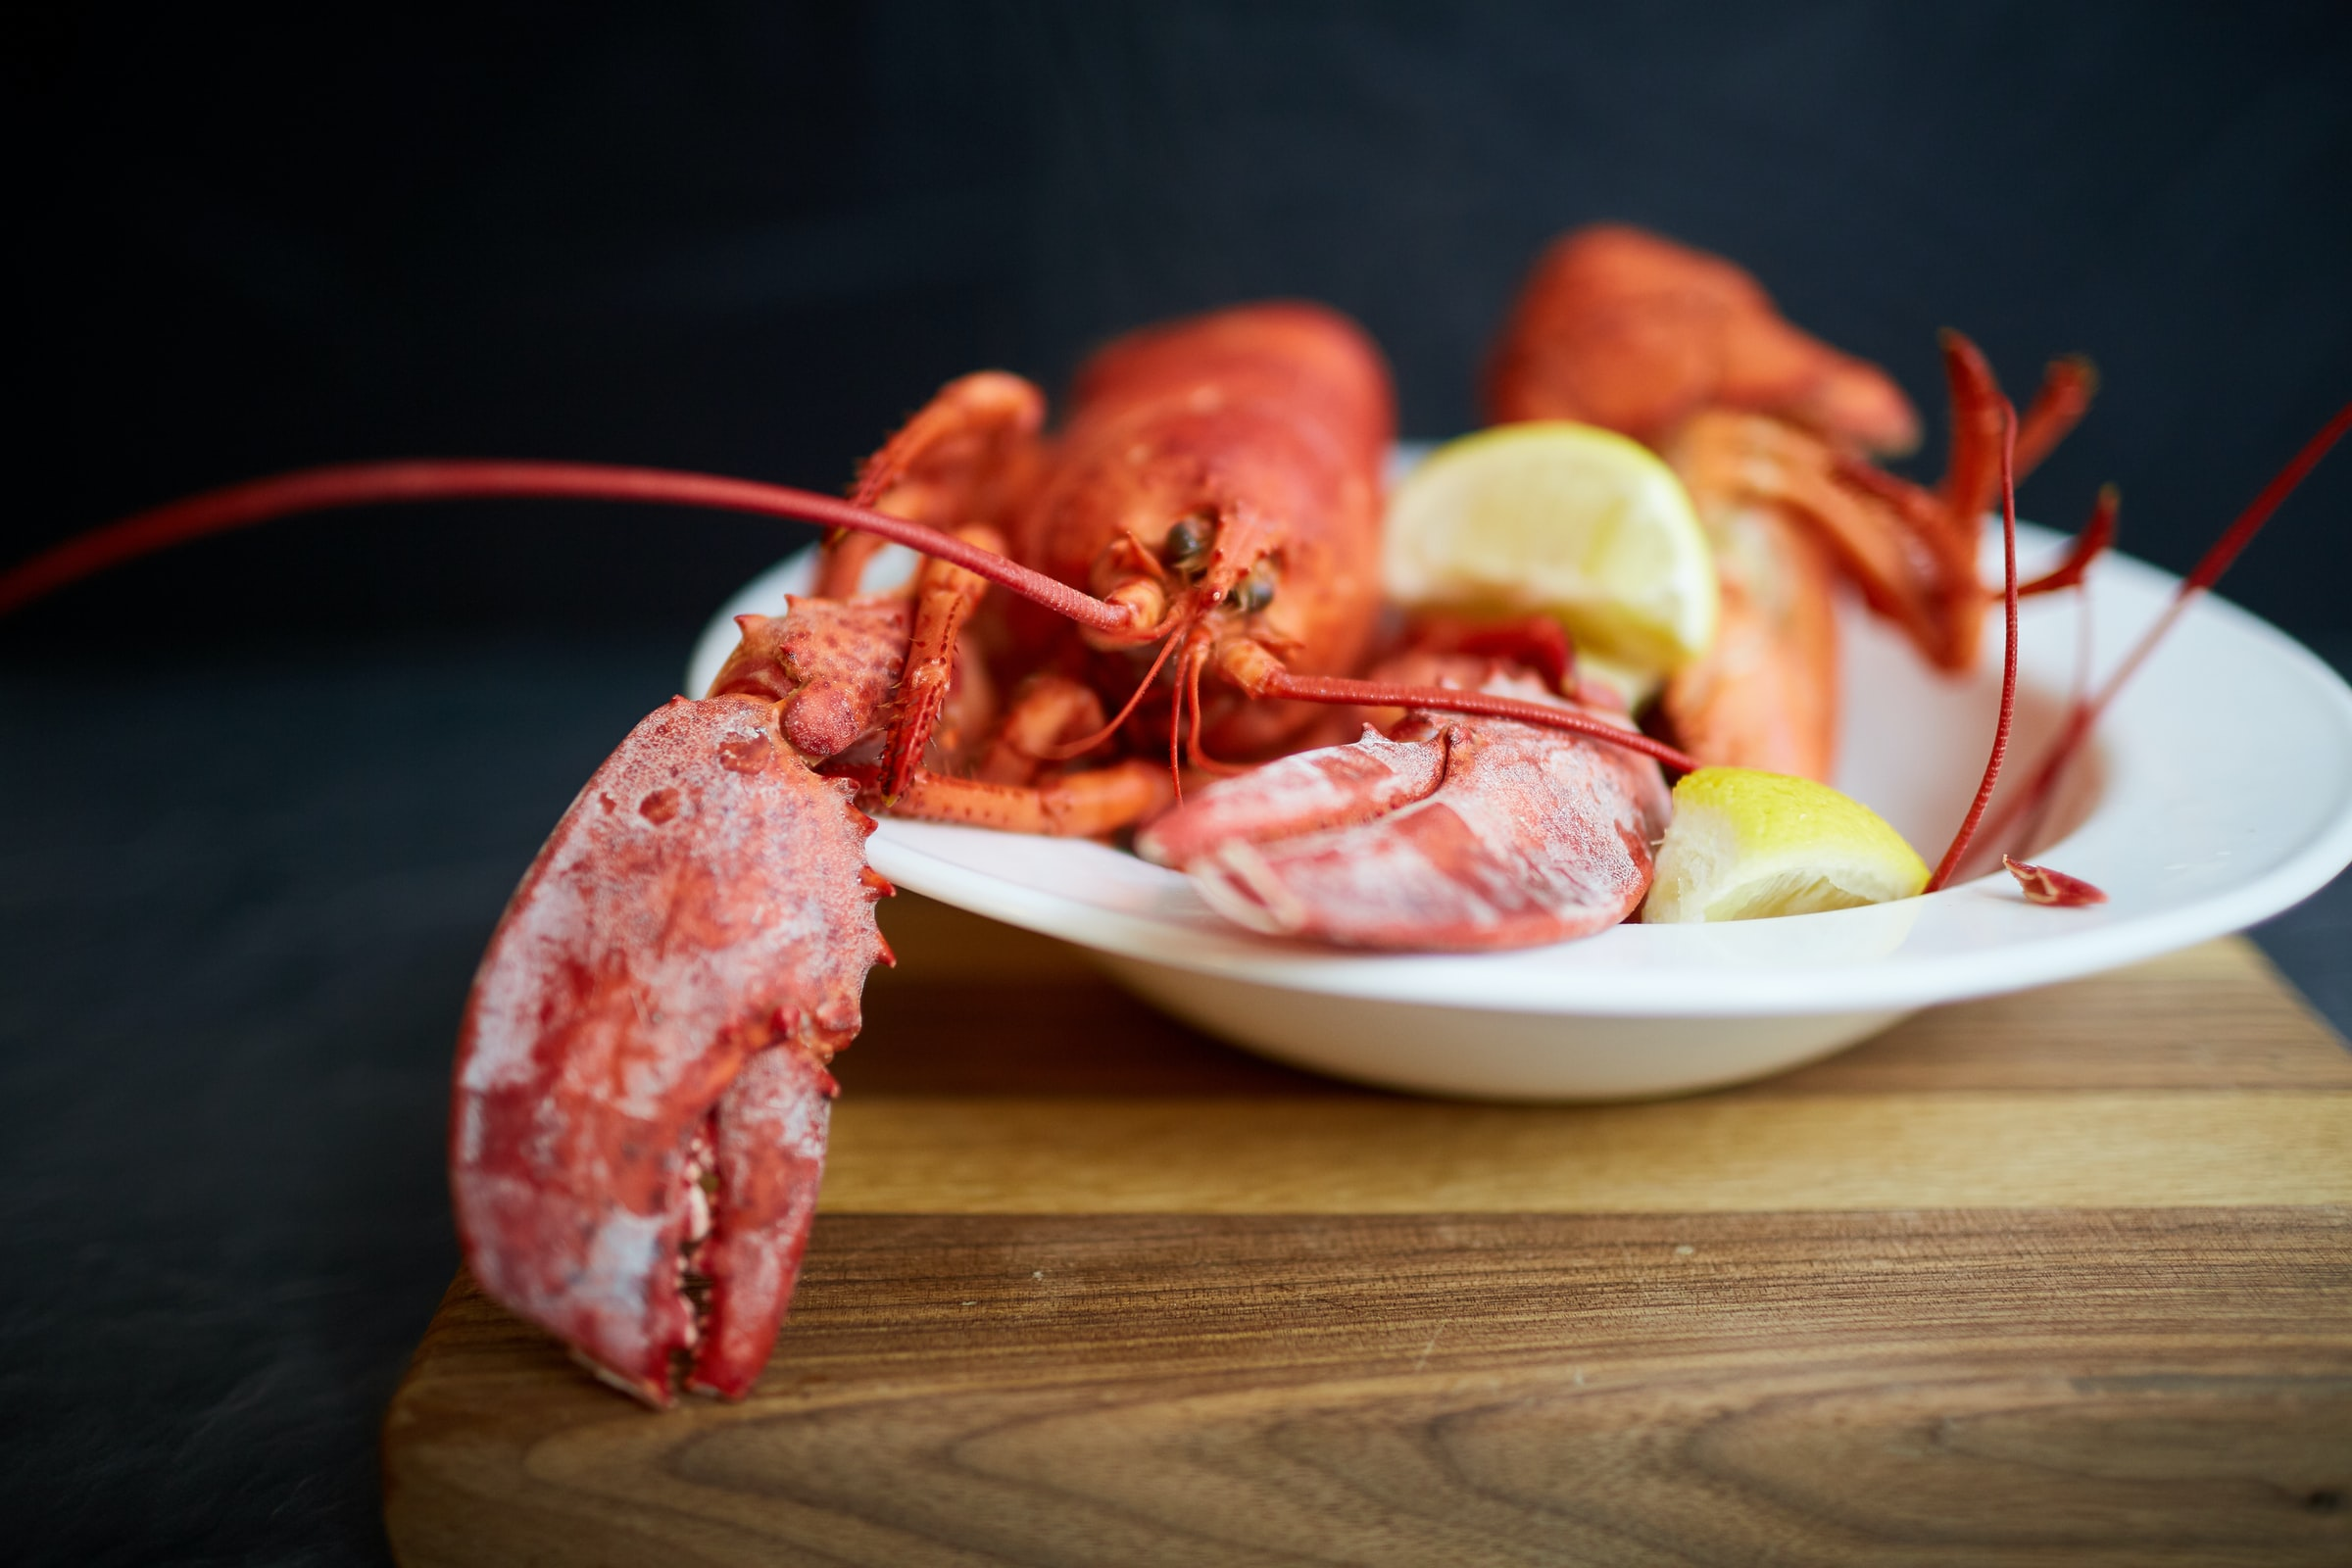 How to kill lobsters with kindness